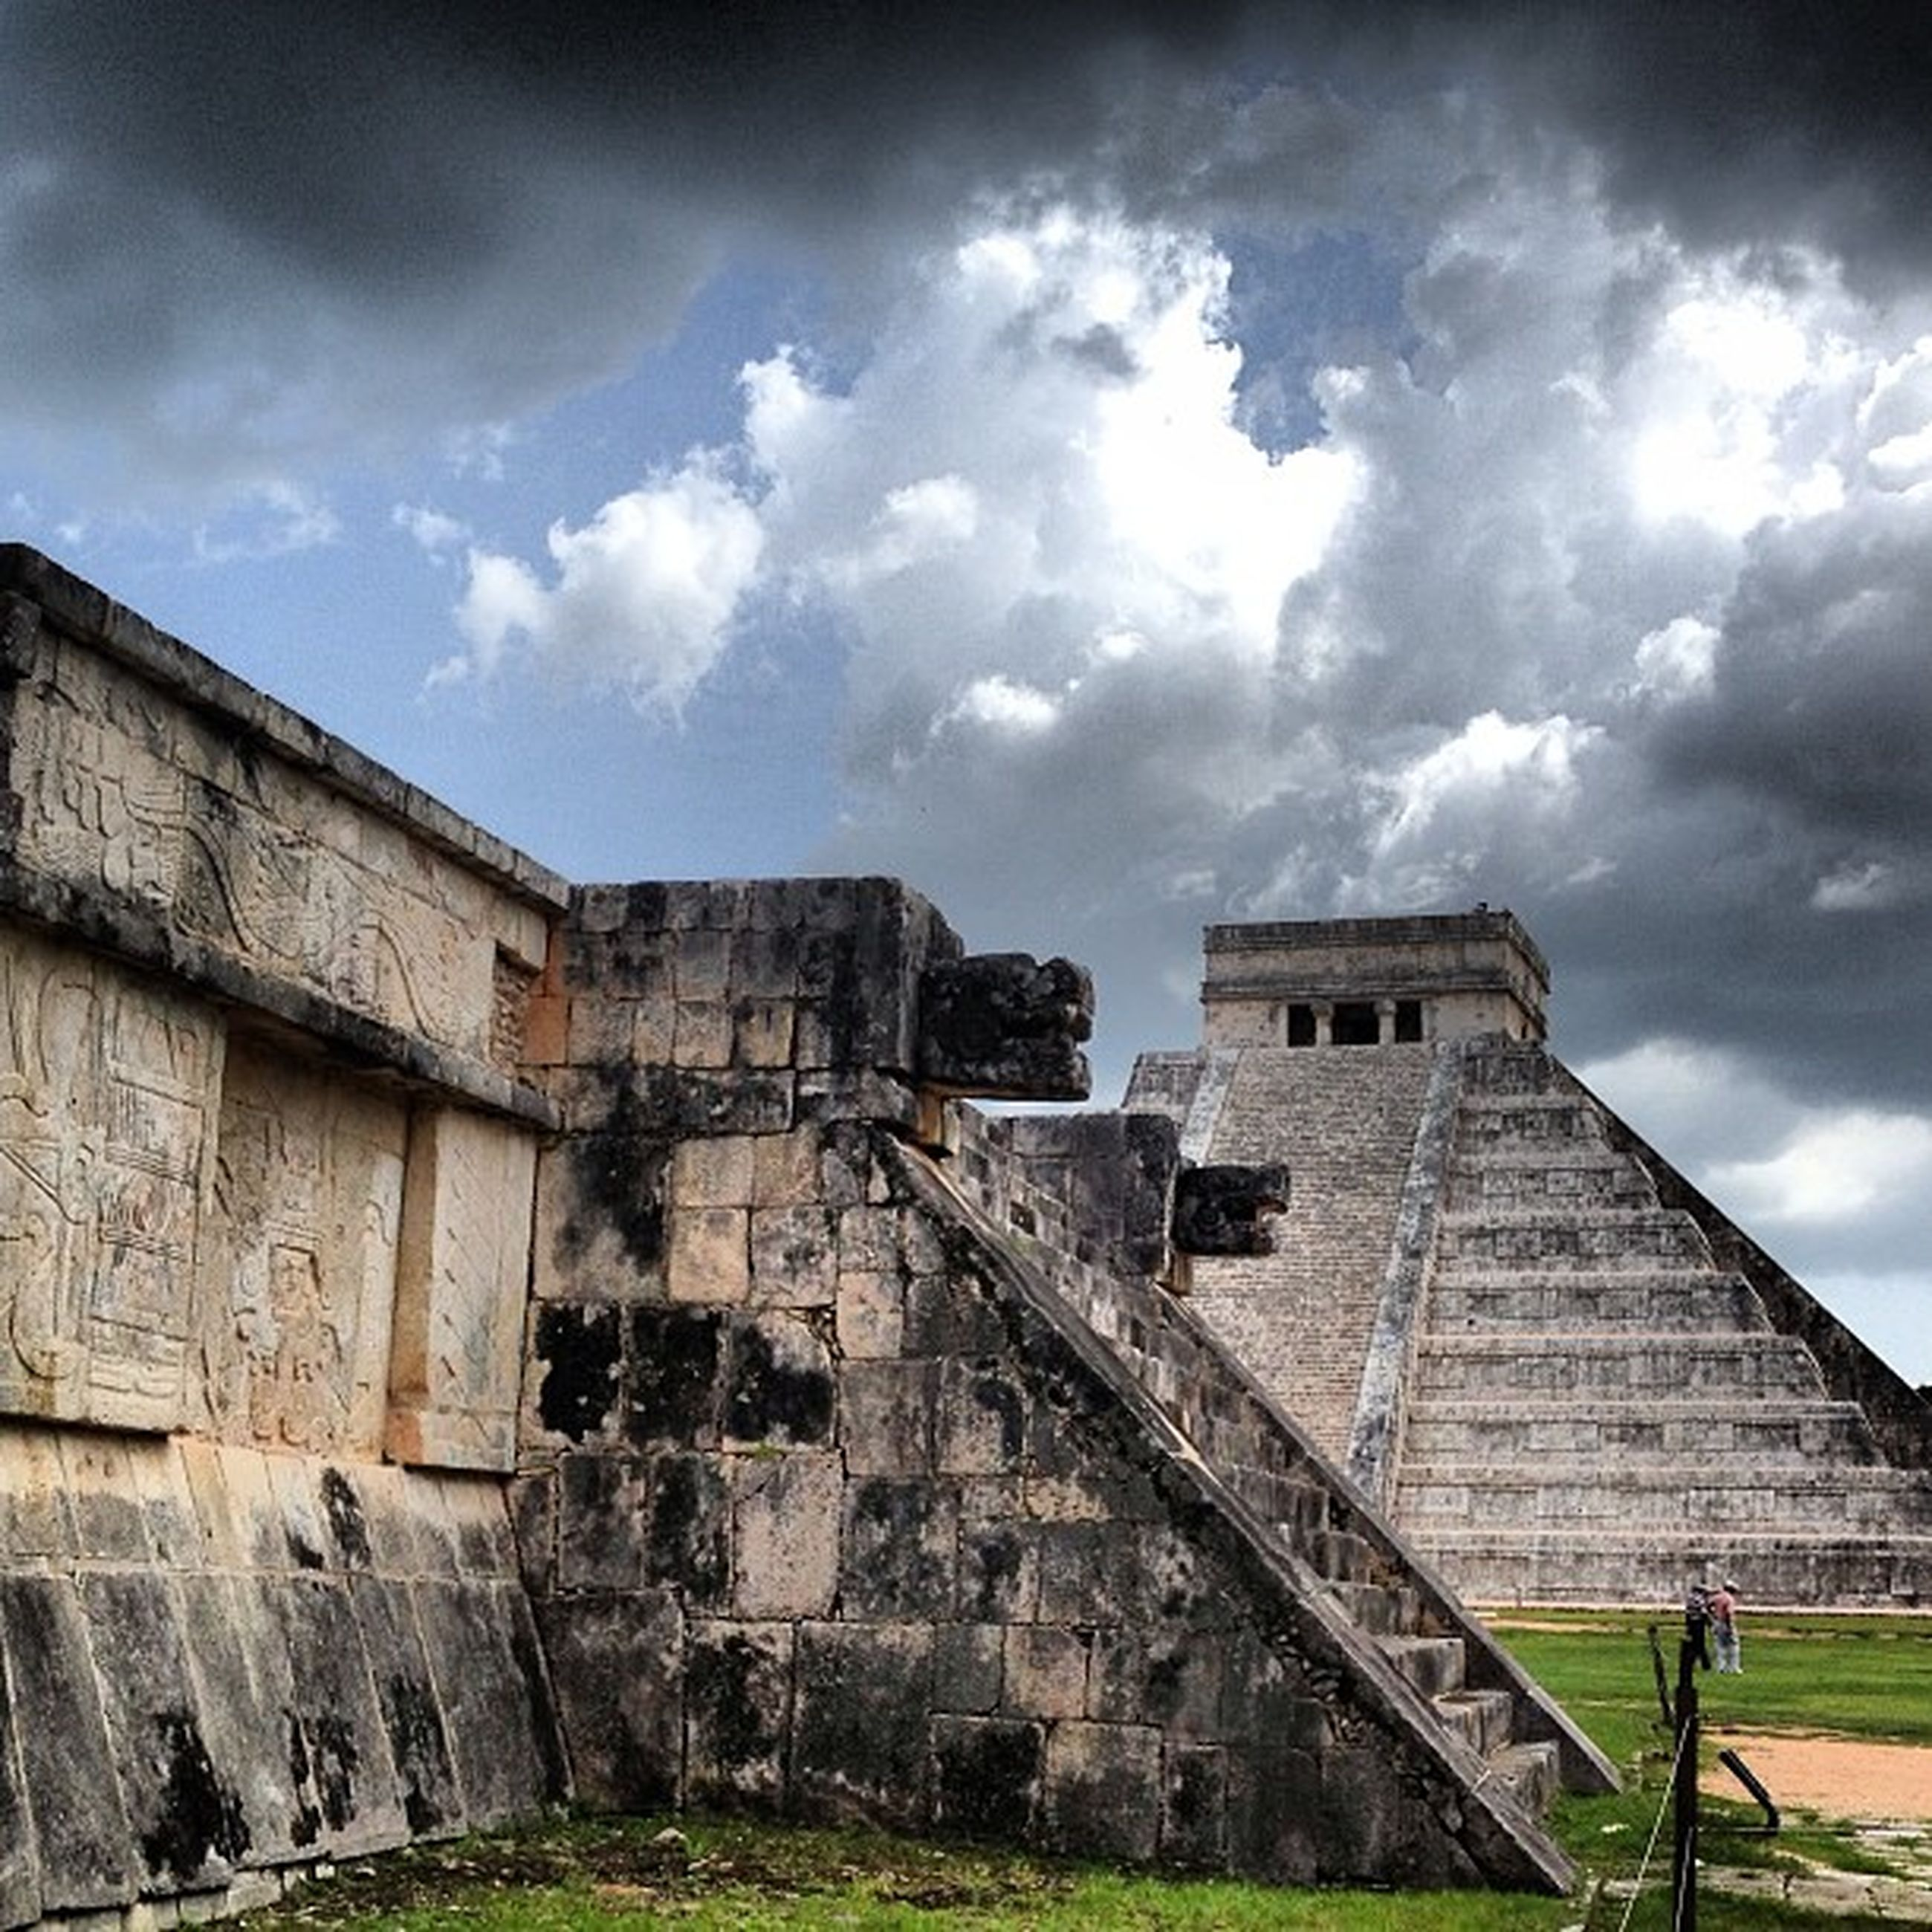 architecture, sky, built structure, cloud - sky, building exterior, cloudy, old, abandoned, low angle view, old ruin, cloud, history, weathered, damaged, deterioration, run-down, obsolete, ruined, the past, day